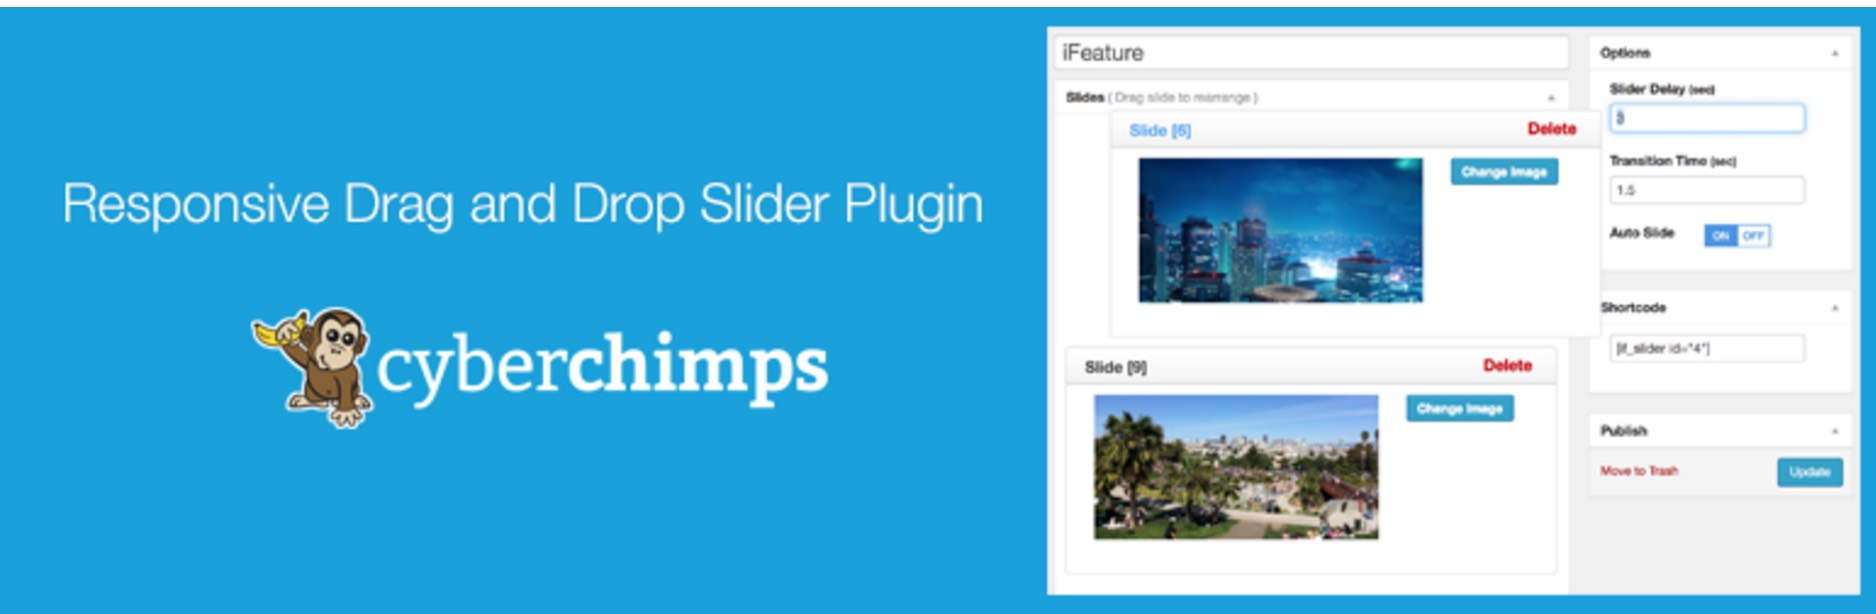 iFeature Slider